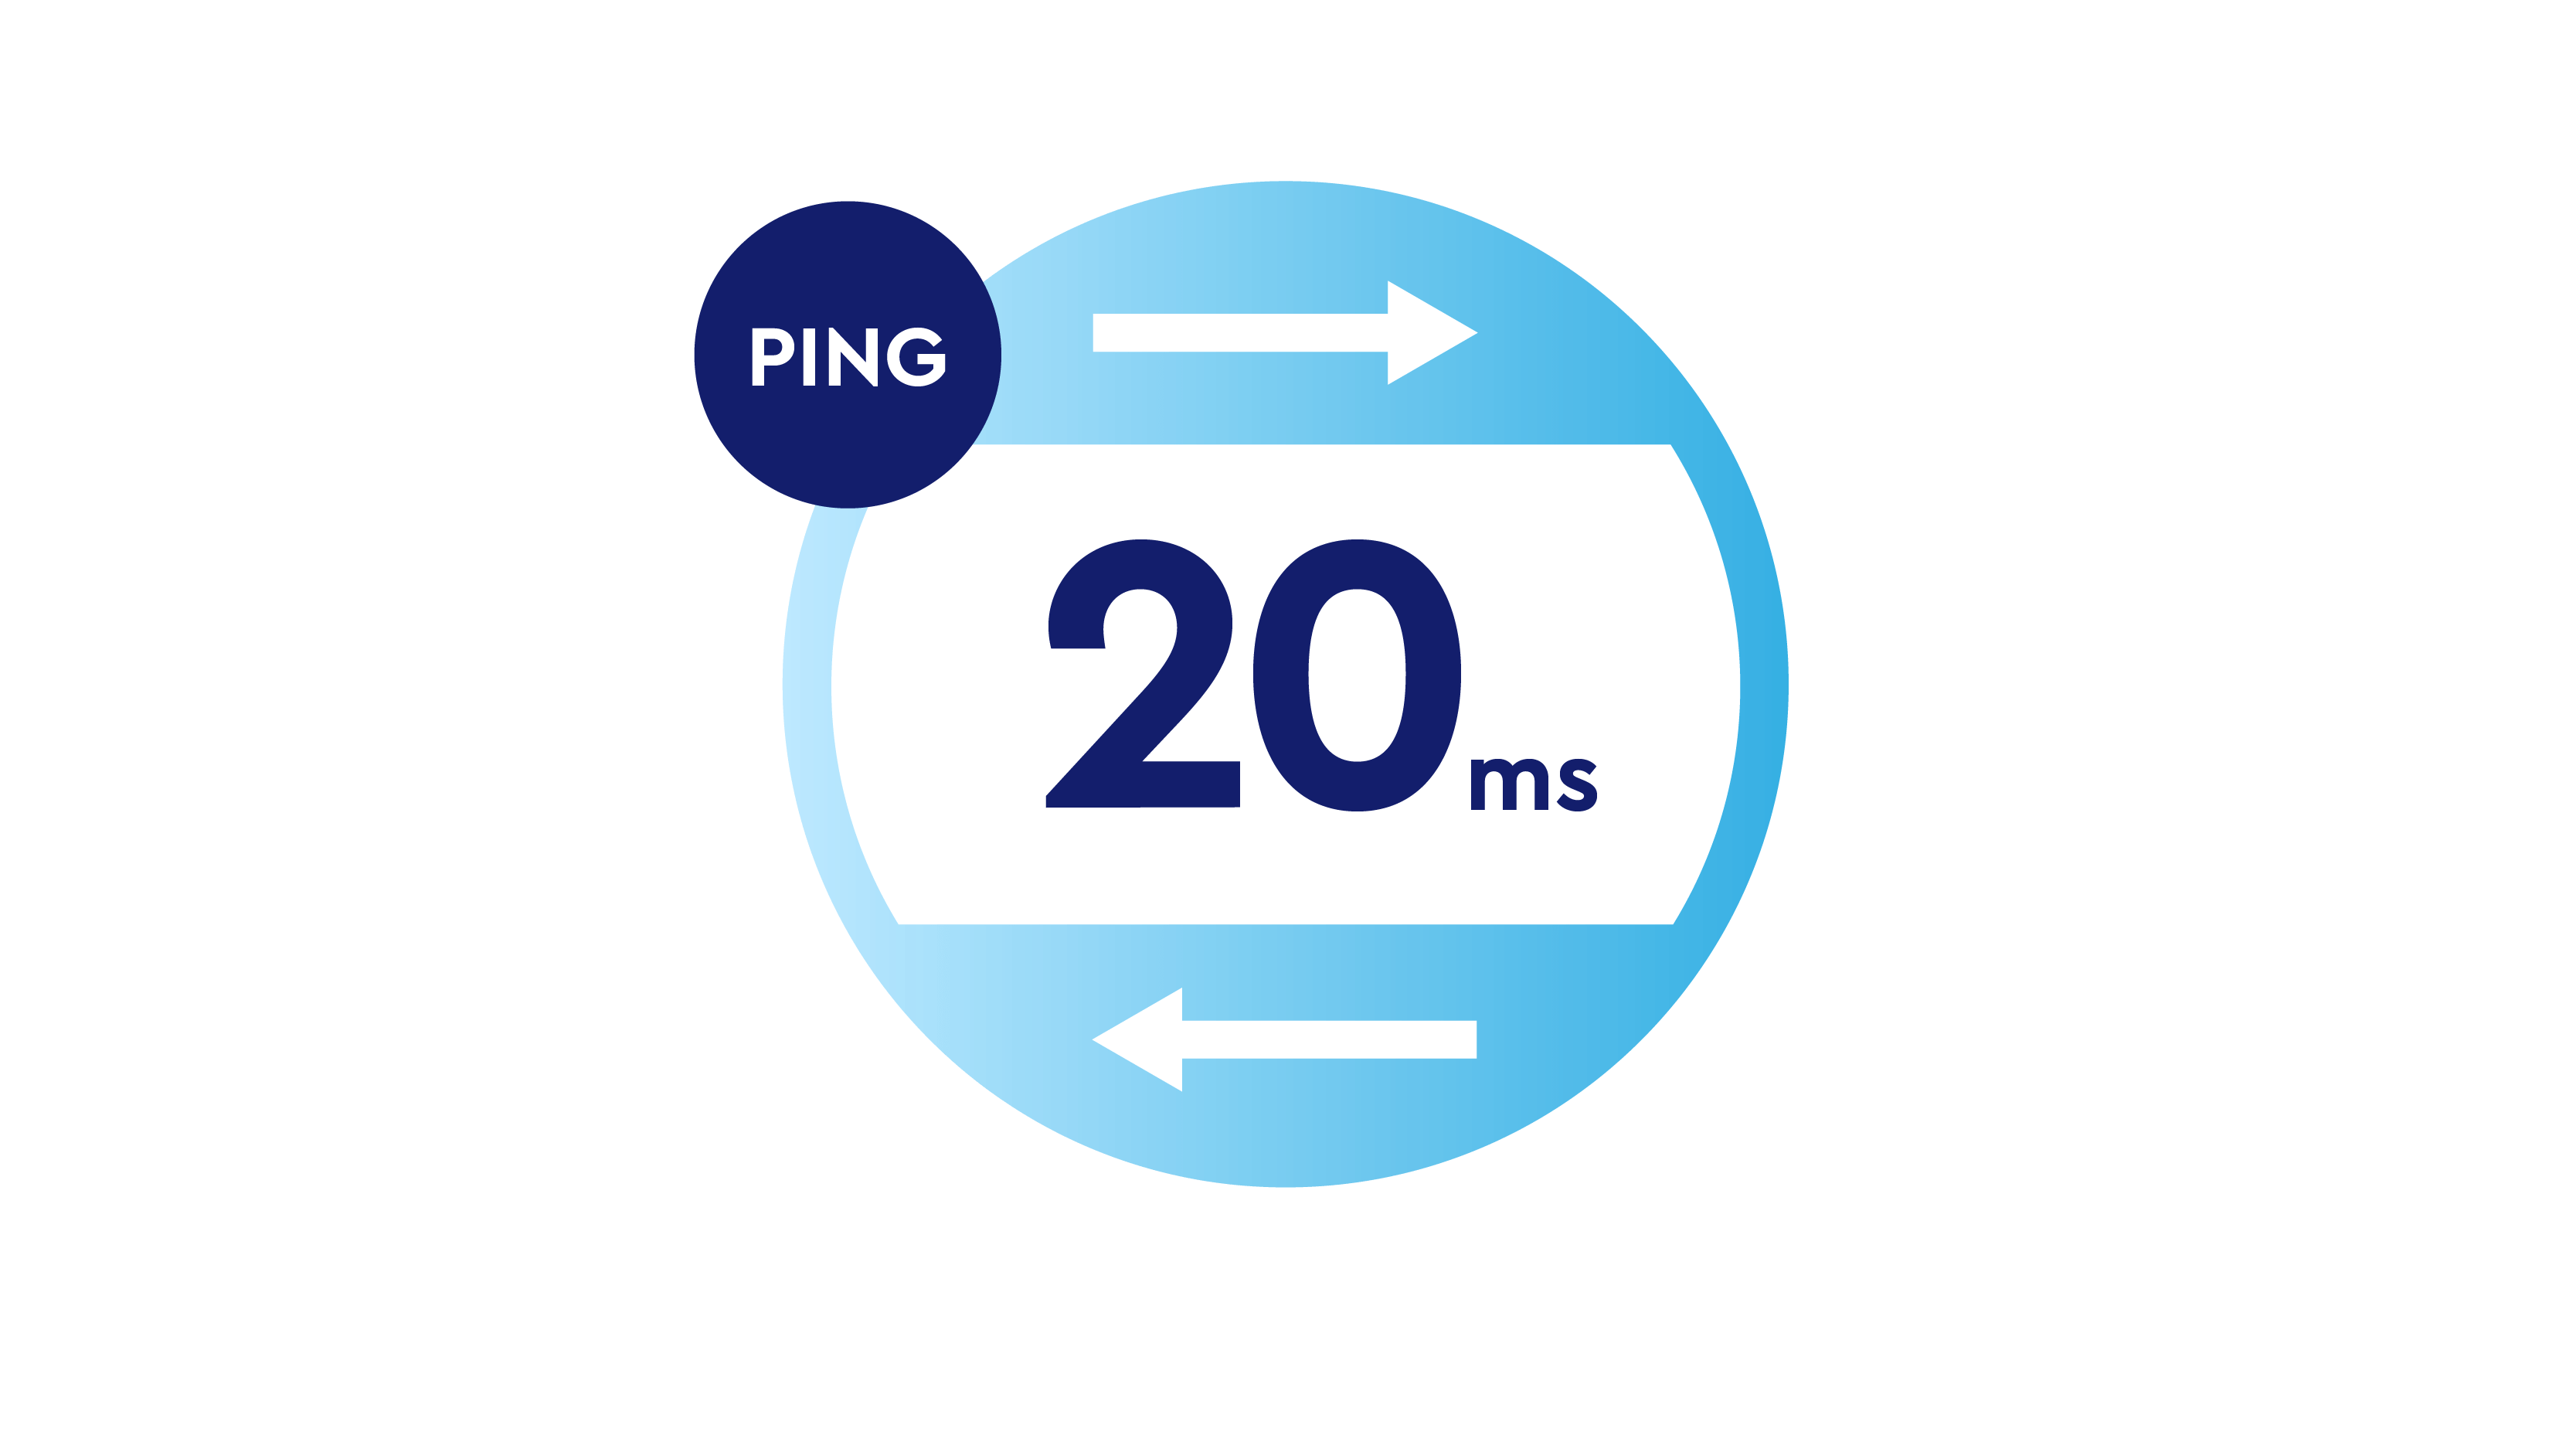 Ping test depicting a great ping